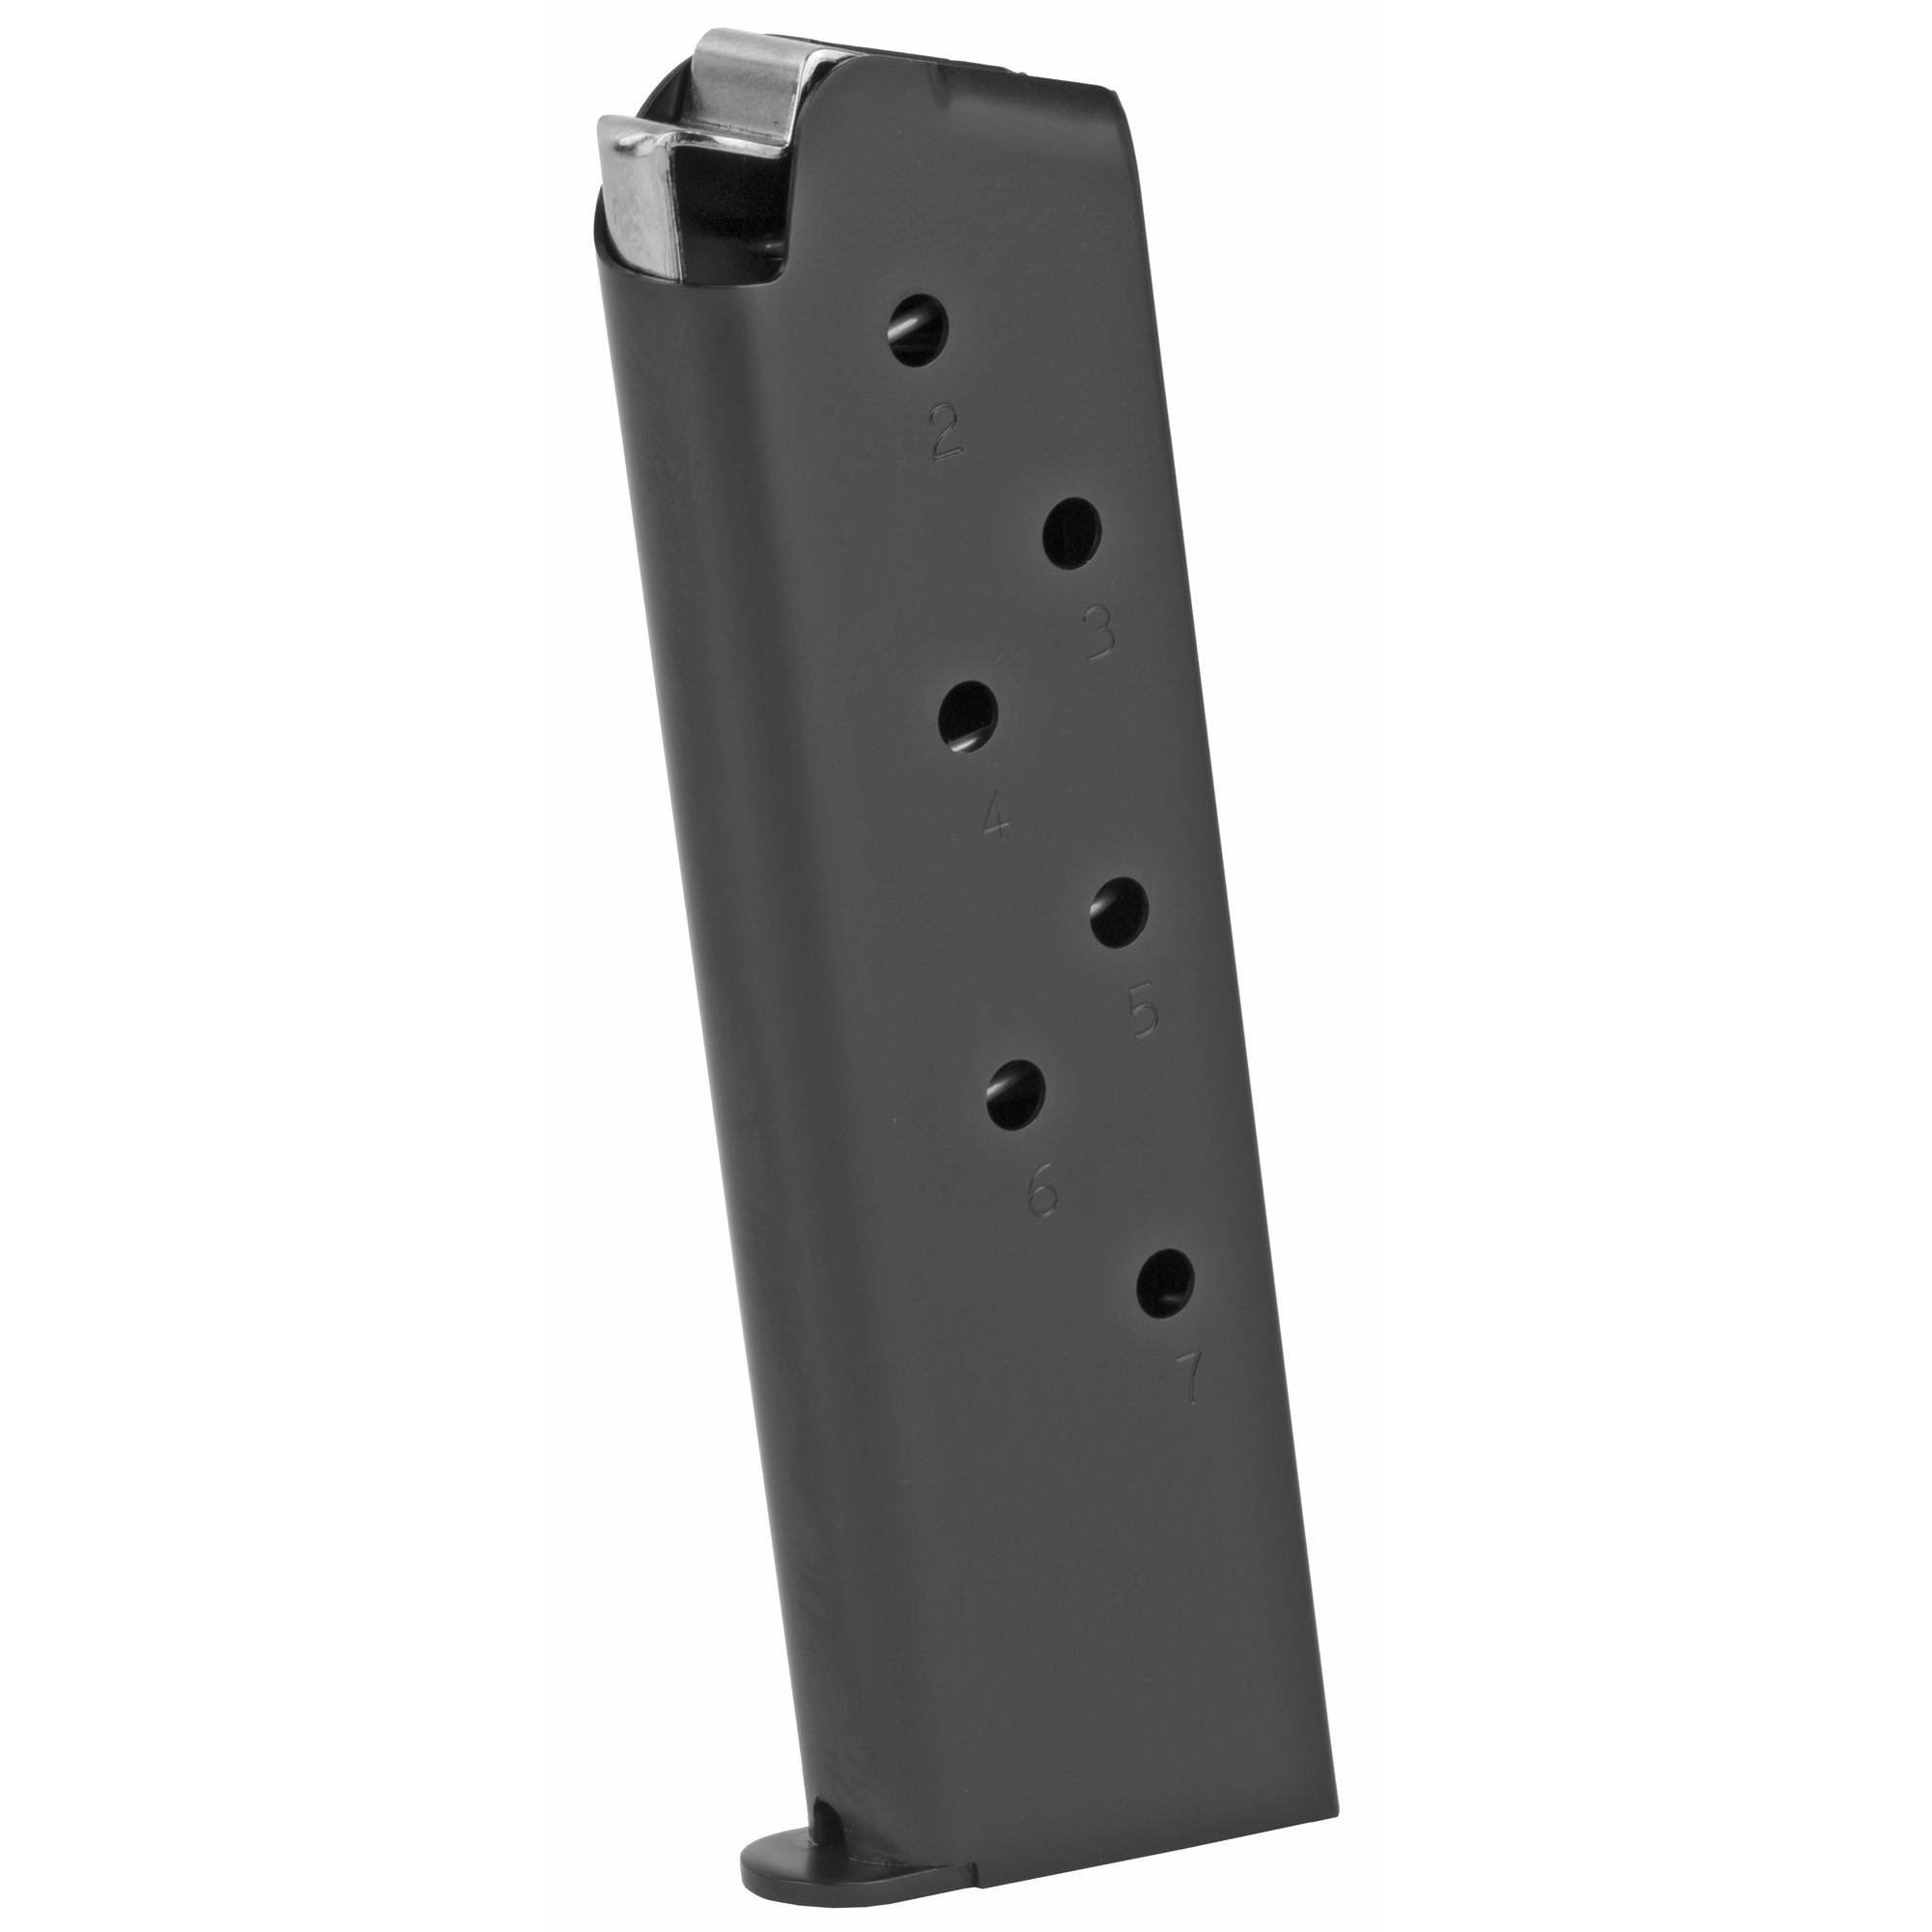 """This magazine is made to Remington's specifications and tolerances using quality materials that provide perfect fit"""" durability and reliability."""